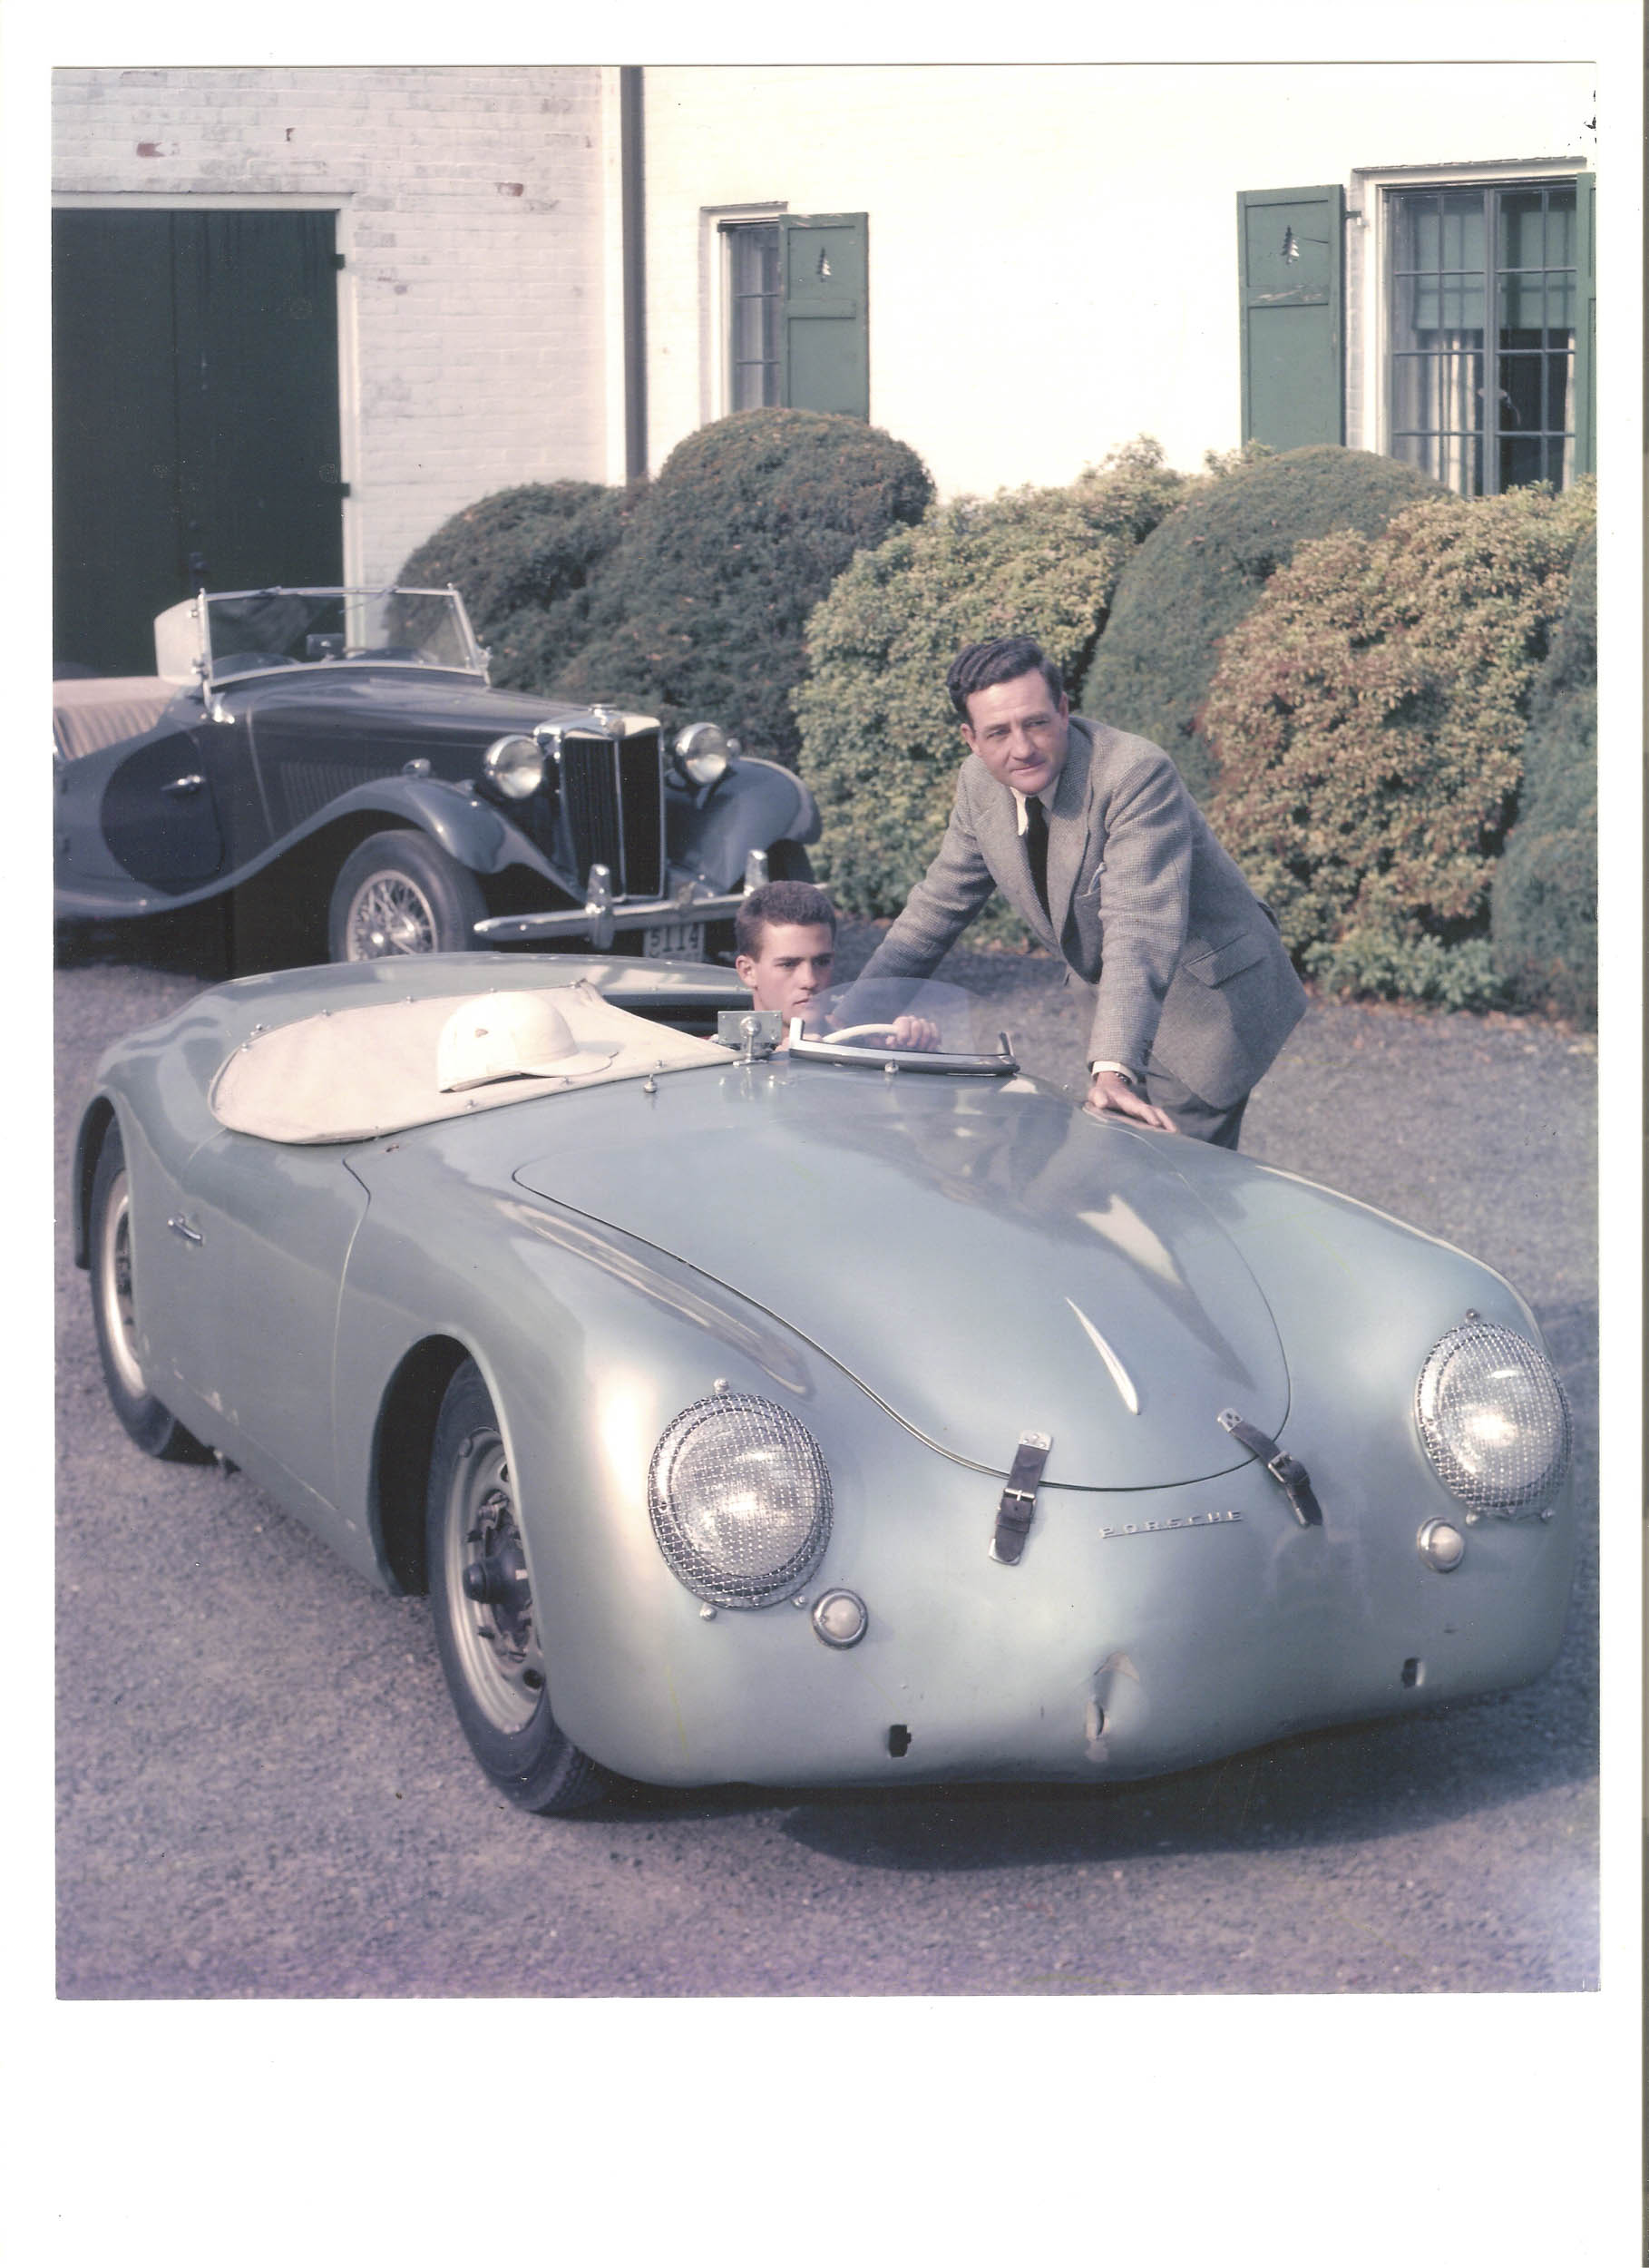 Briggs Cunningham and Briggs Jr. with the Porsche America Roadster. The original light radium green paint can be seen here.